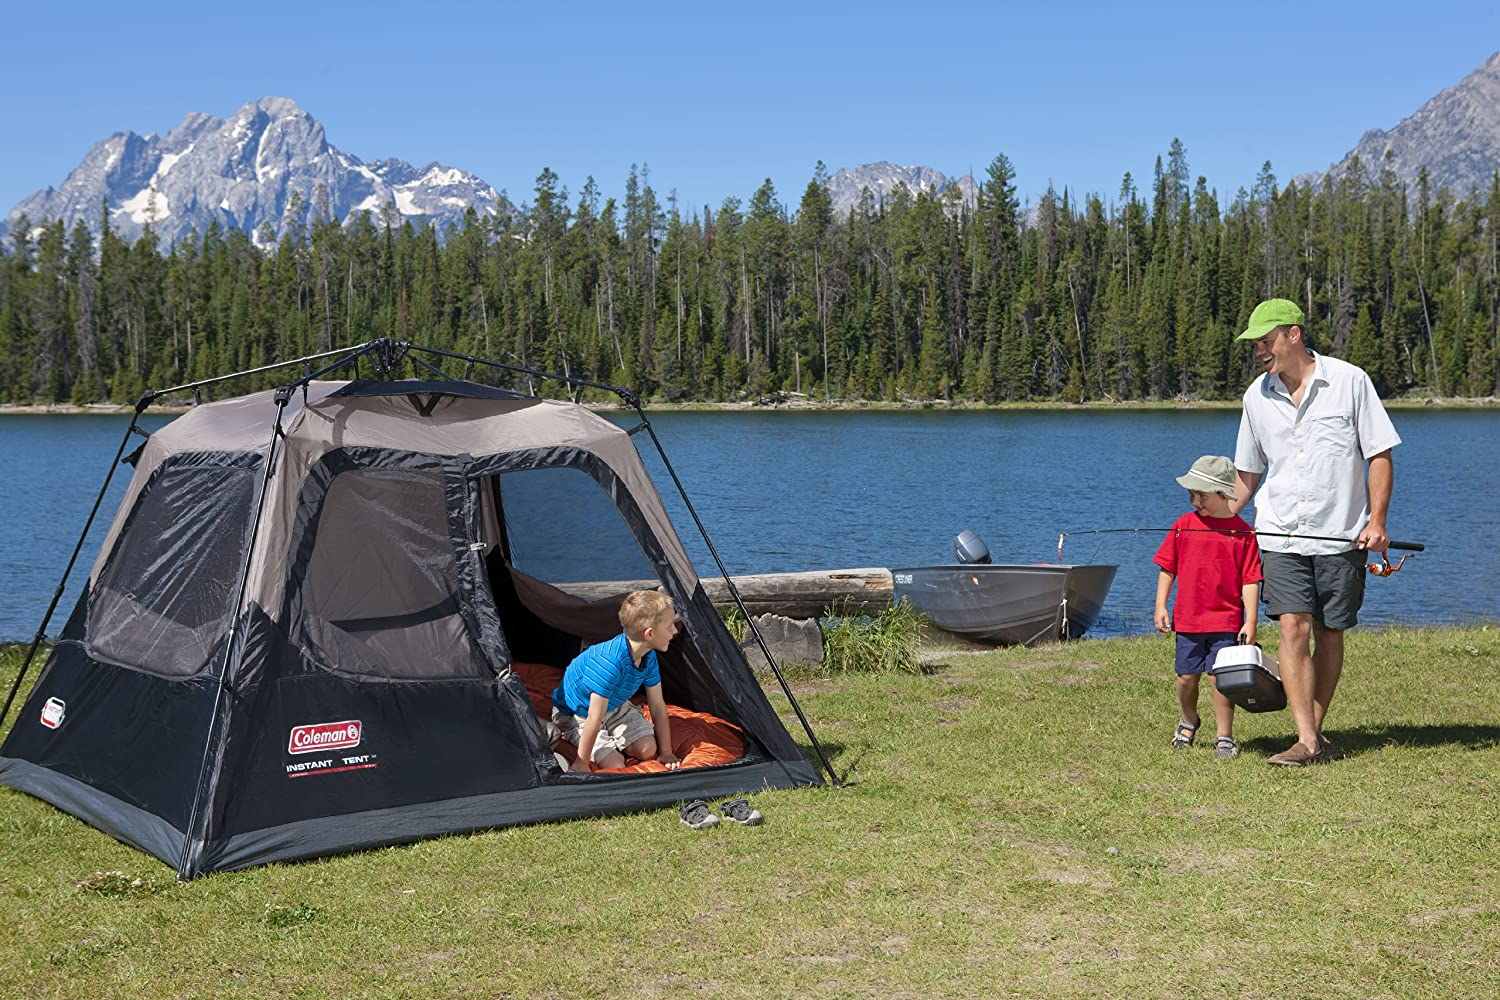 Coleman 4 Person Instant Tent & The 10 Best Cheap Camping Tents in 2018 - Review with Buying Guide